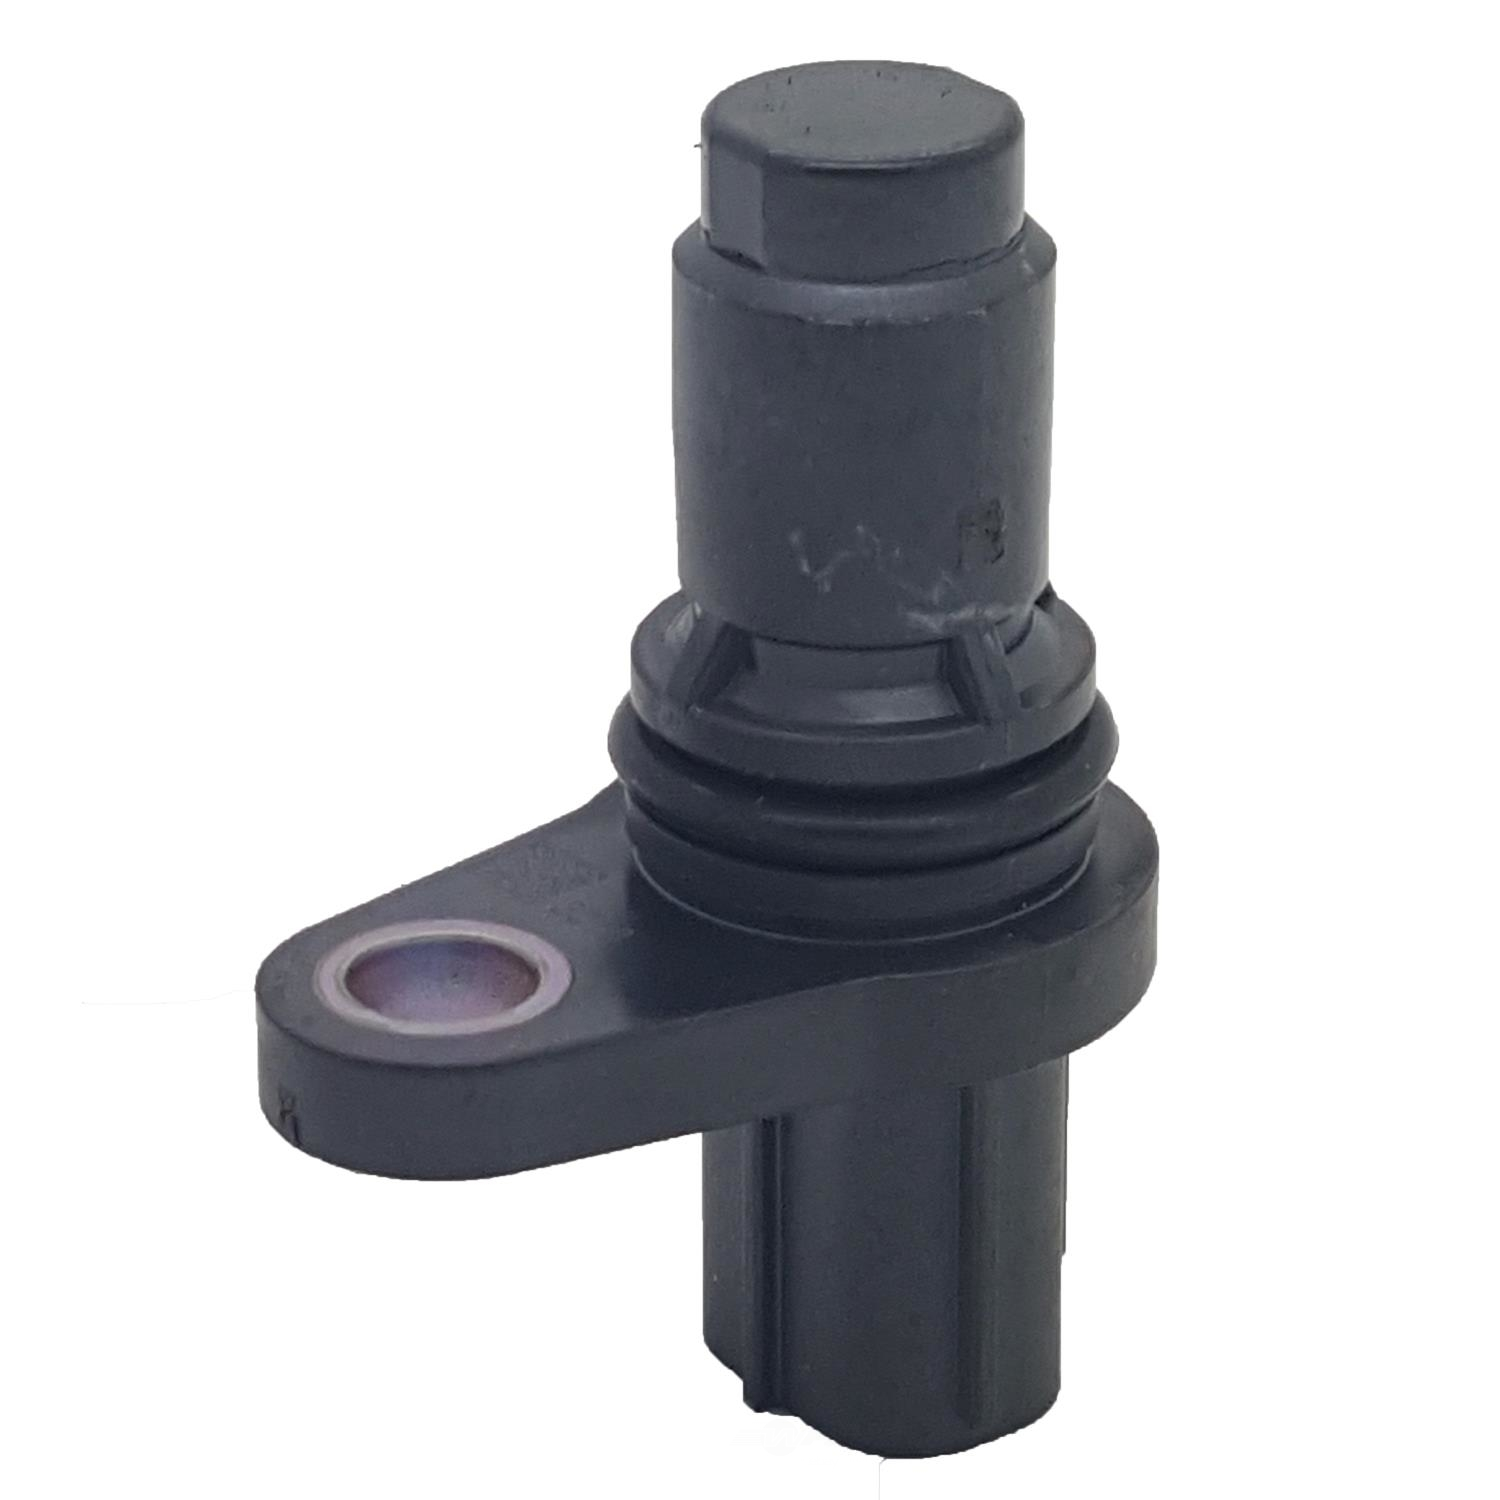 STANDARD T-SERIES - Engine Camshaft Position Sensor - STT PC559T